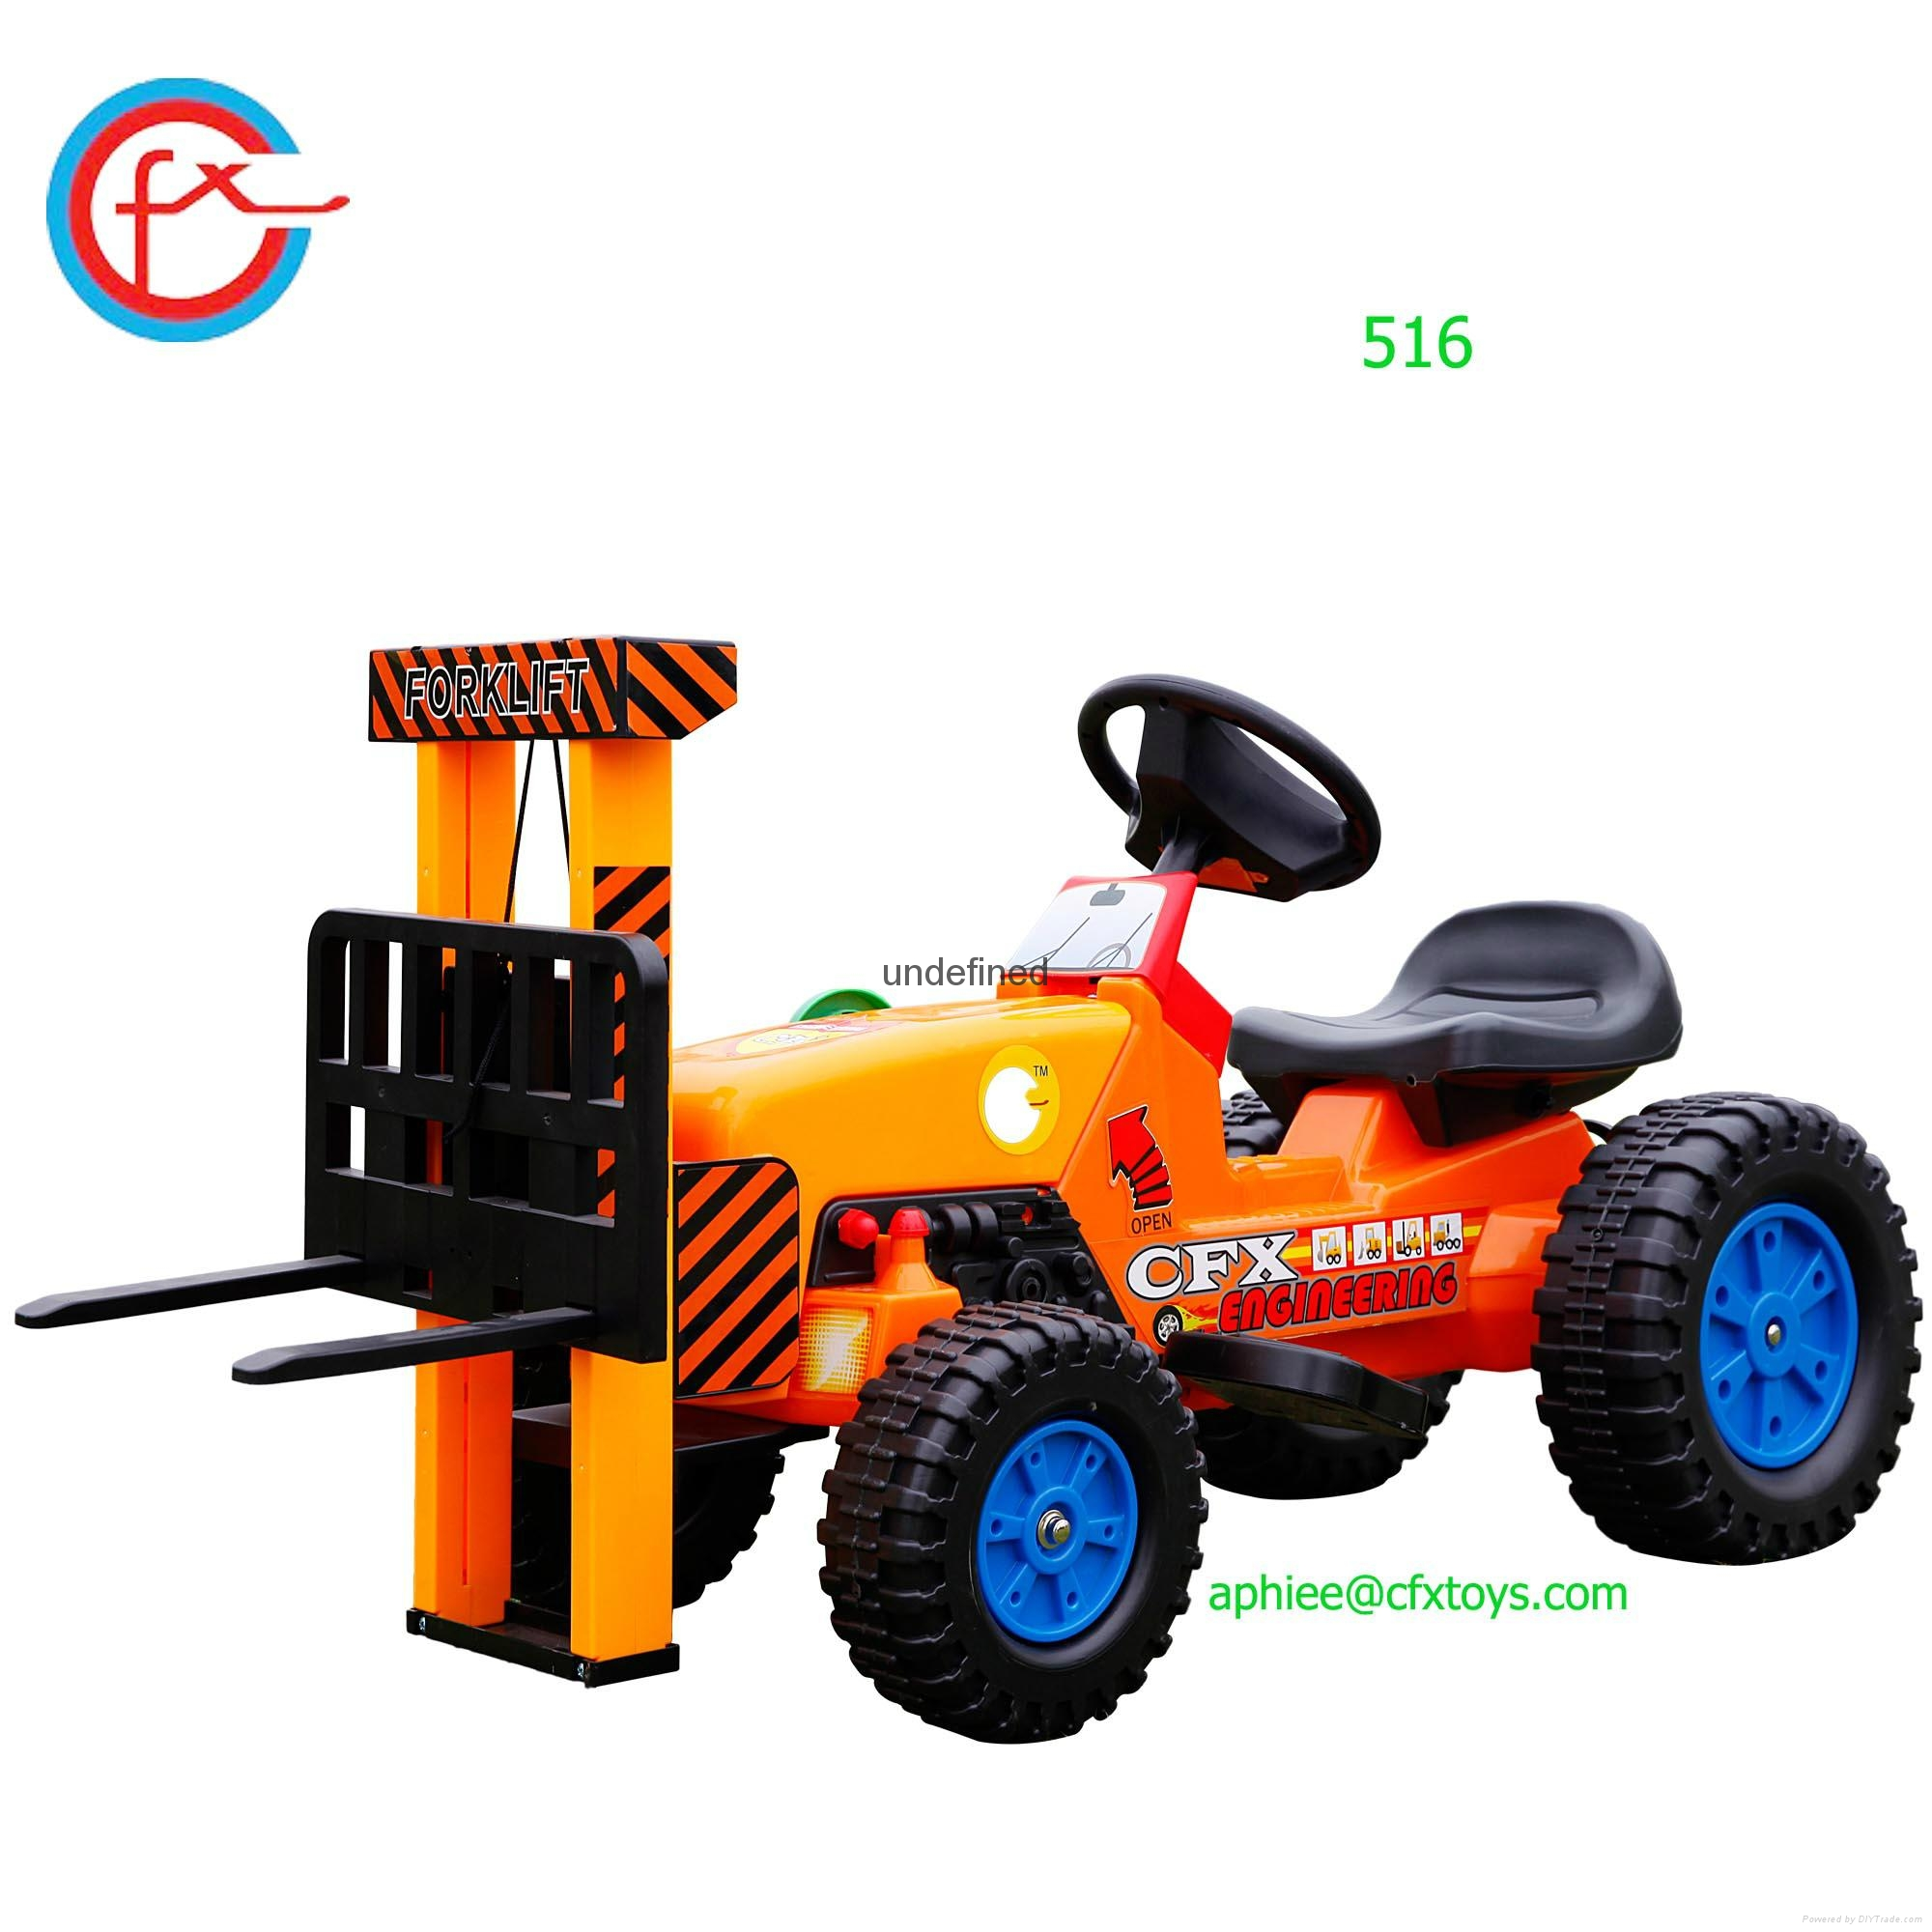 Car Toys Product : Electrical toy car for child to ride on mini forklift